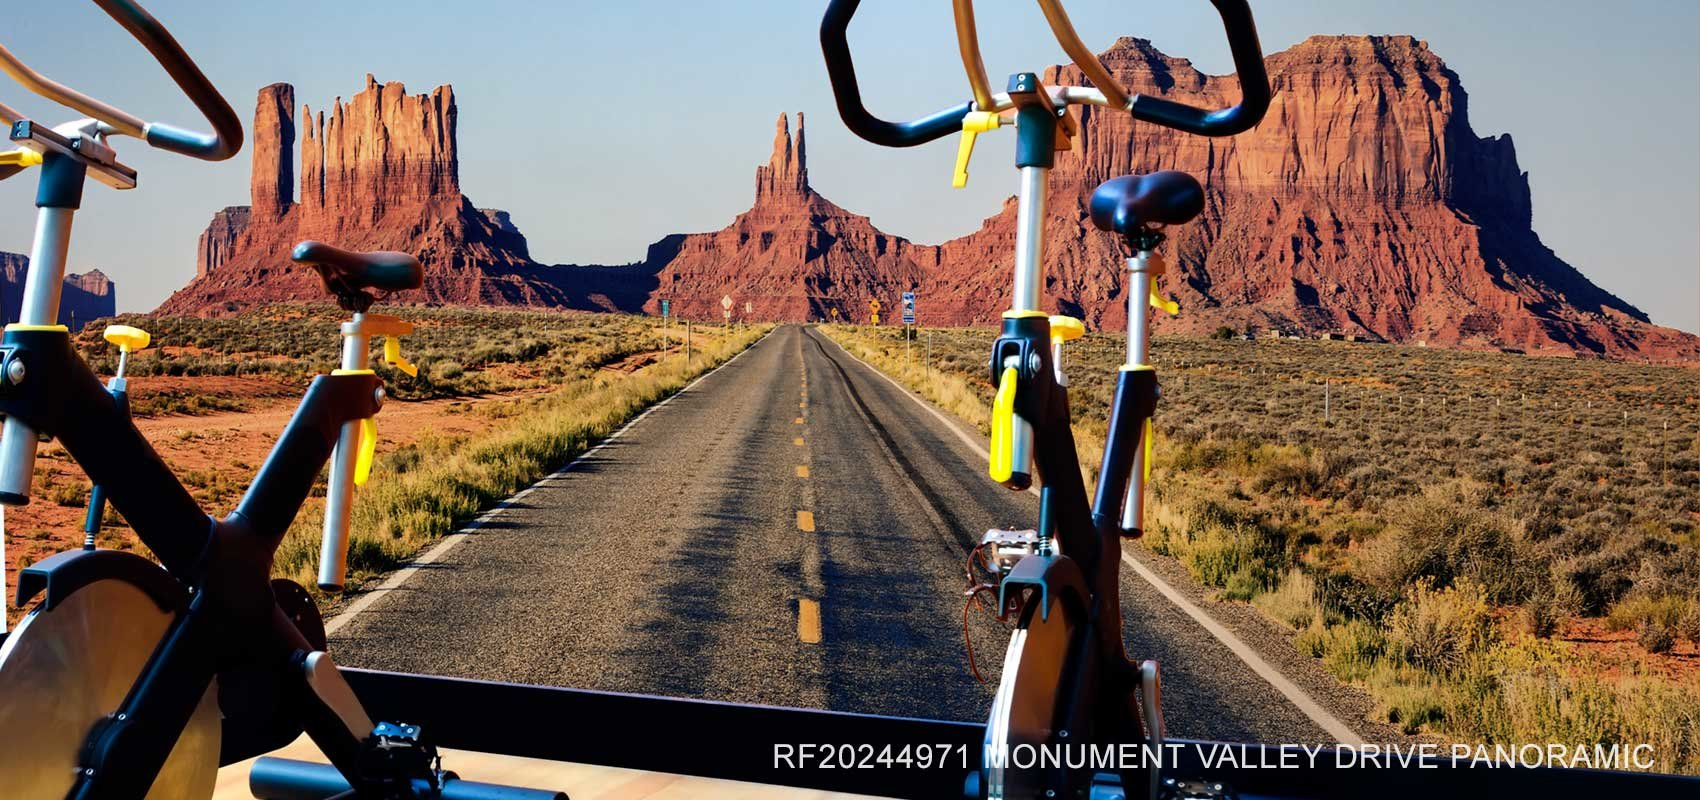 Monument Valley Drive Panoramic Wall Mural